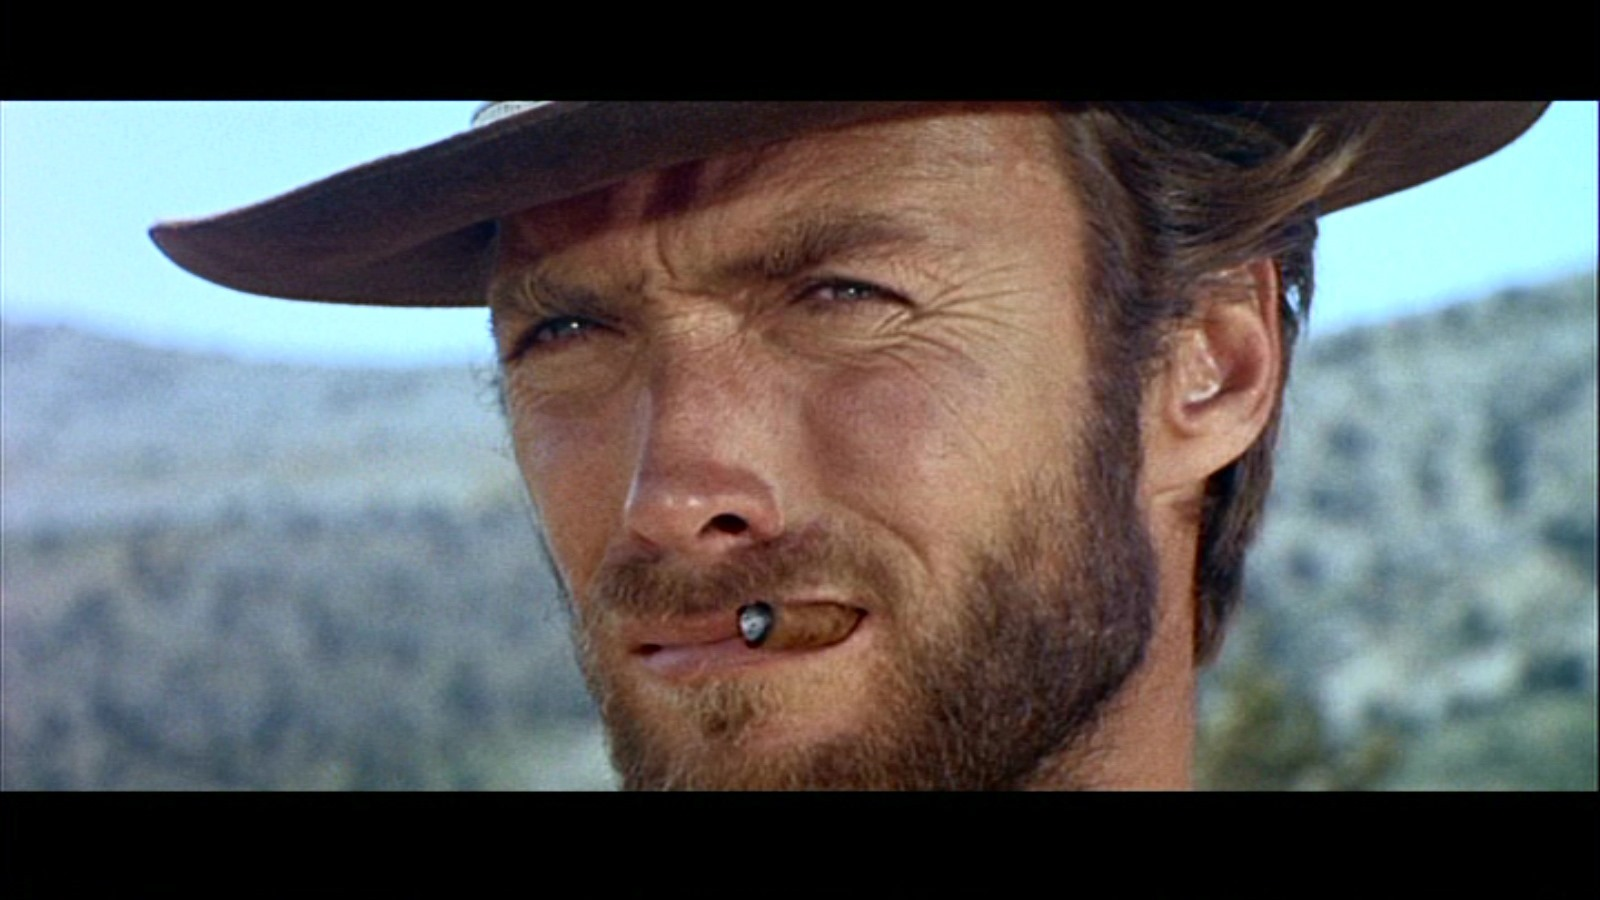 clint_eastwood_the_good_the_bad_and_the_ugly_wallpaper-3463